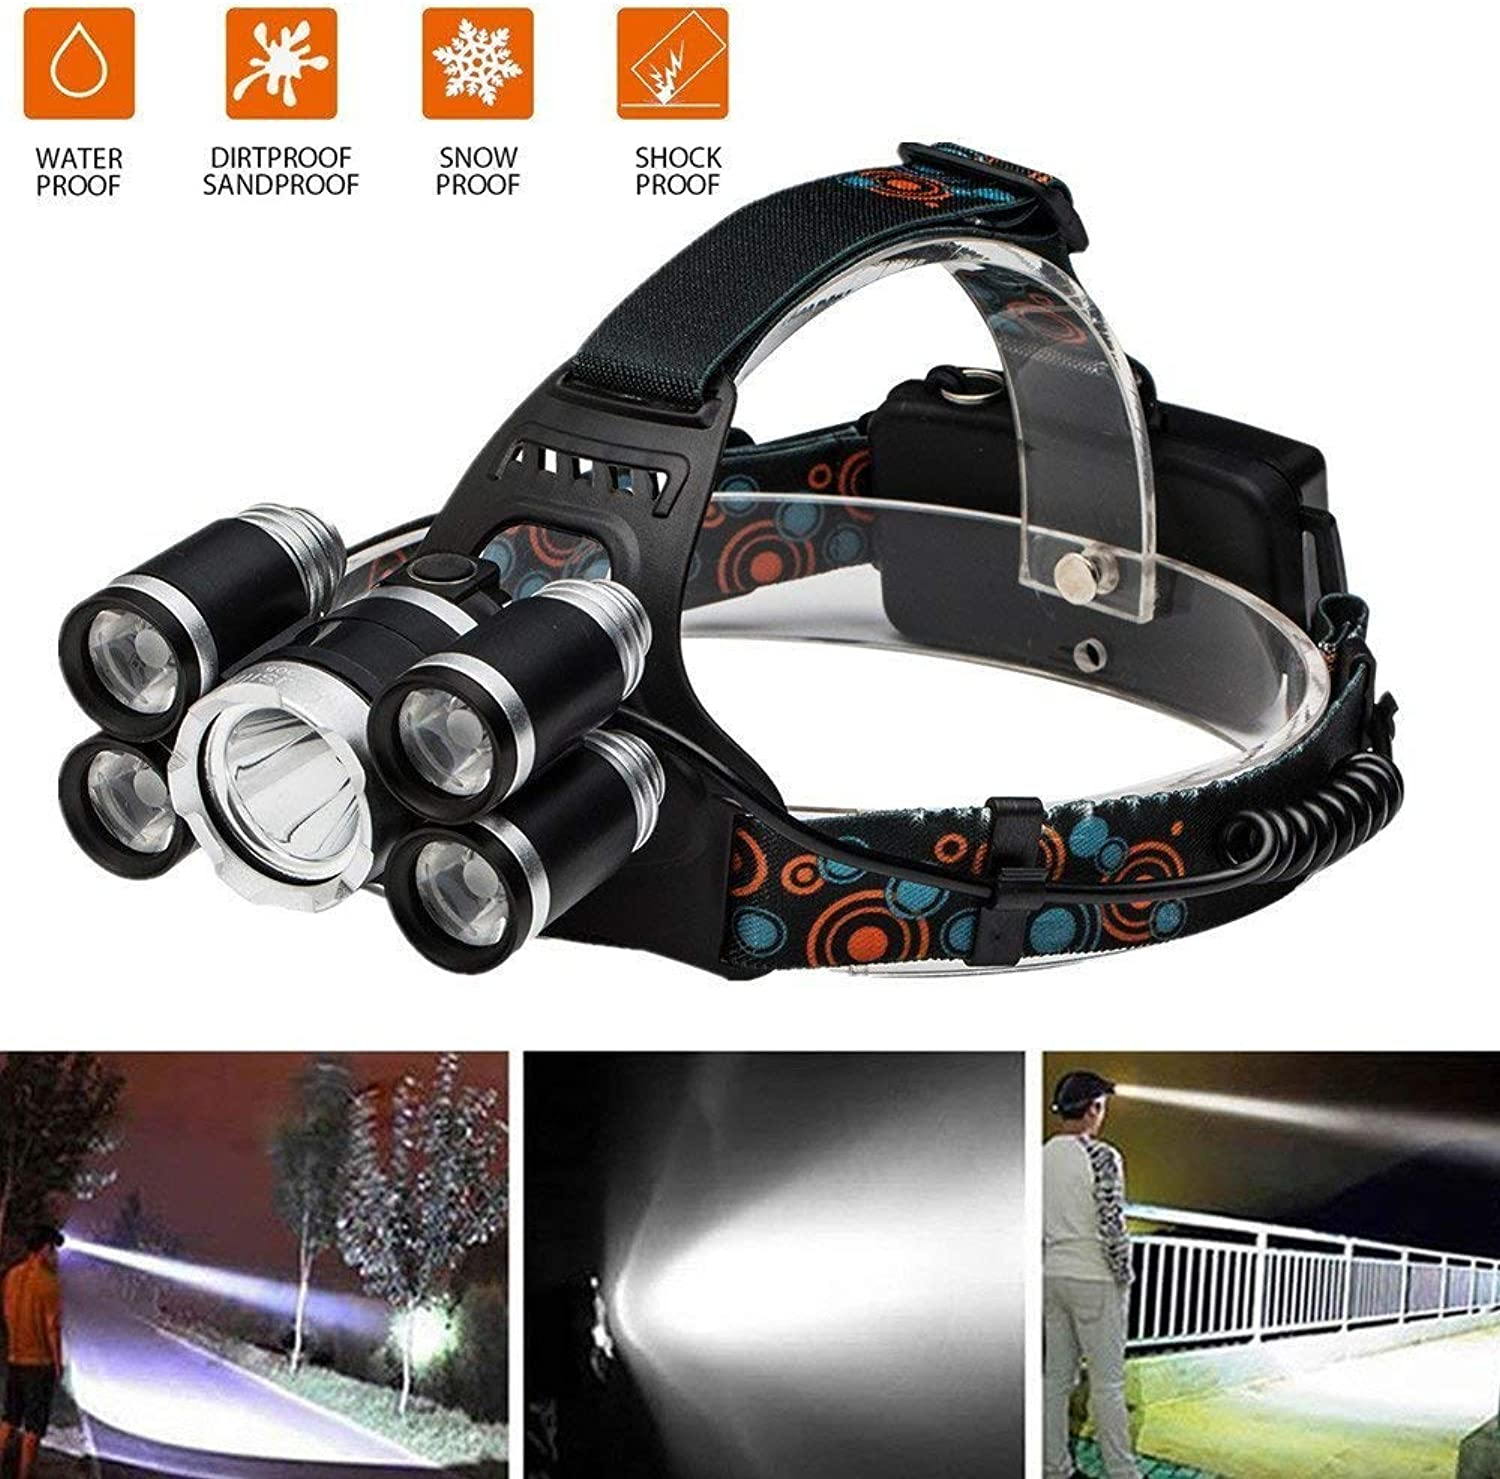 Newest Headlamp Flashlight,Brightest 12000 Lumen Powerful Led Headlight,Waterproof Hard Hat Light,Portable Head Lamp,CREE T6 Rechargeable Batteries,Best Head Lights for Camping Reading Outdoor Sports